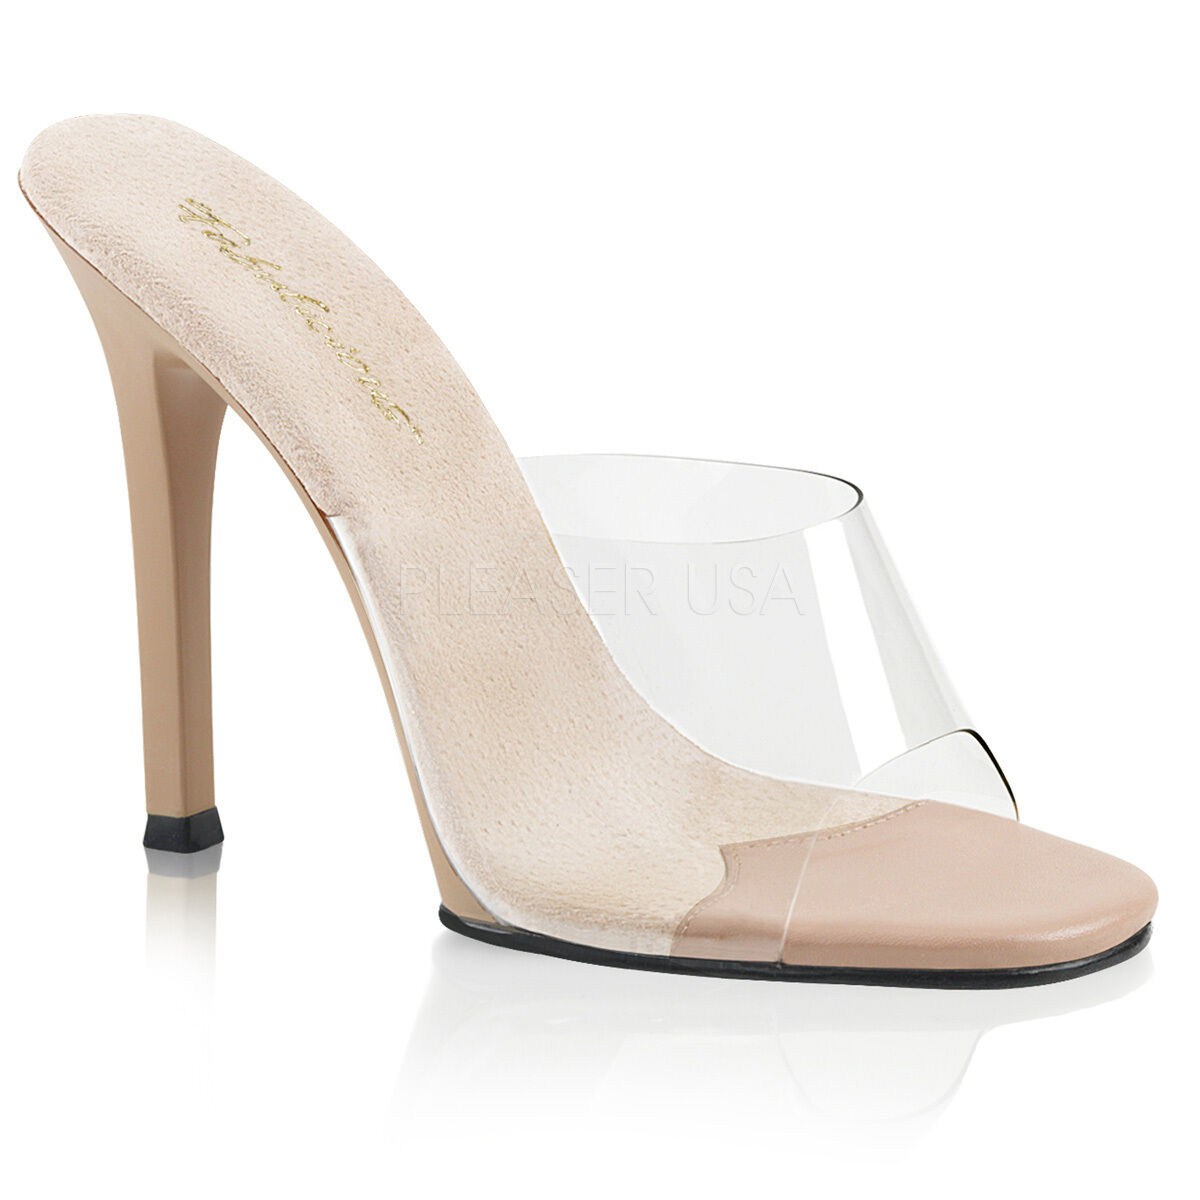 PLEASER Sexy shoes Pageant Slip On Tan 4 1 2  High Heels Mules GALA01 C-ND ND